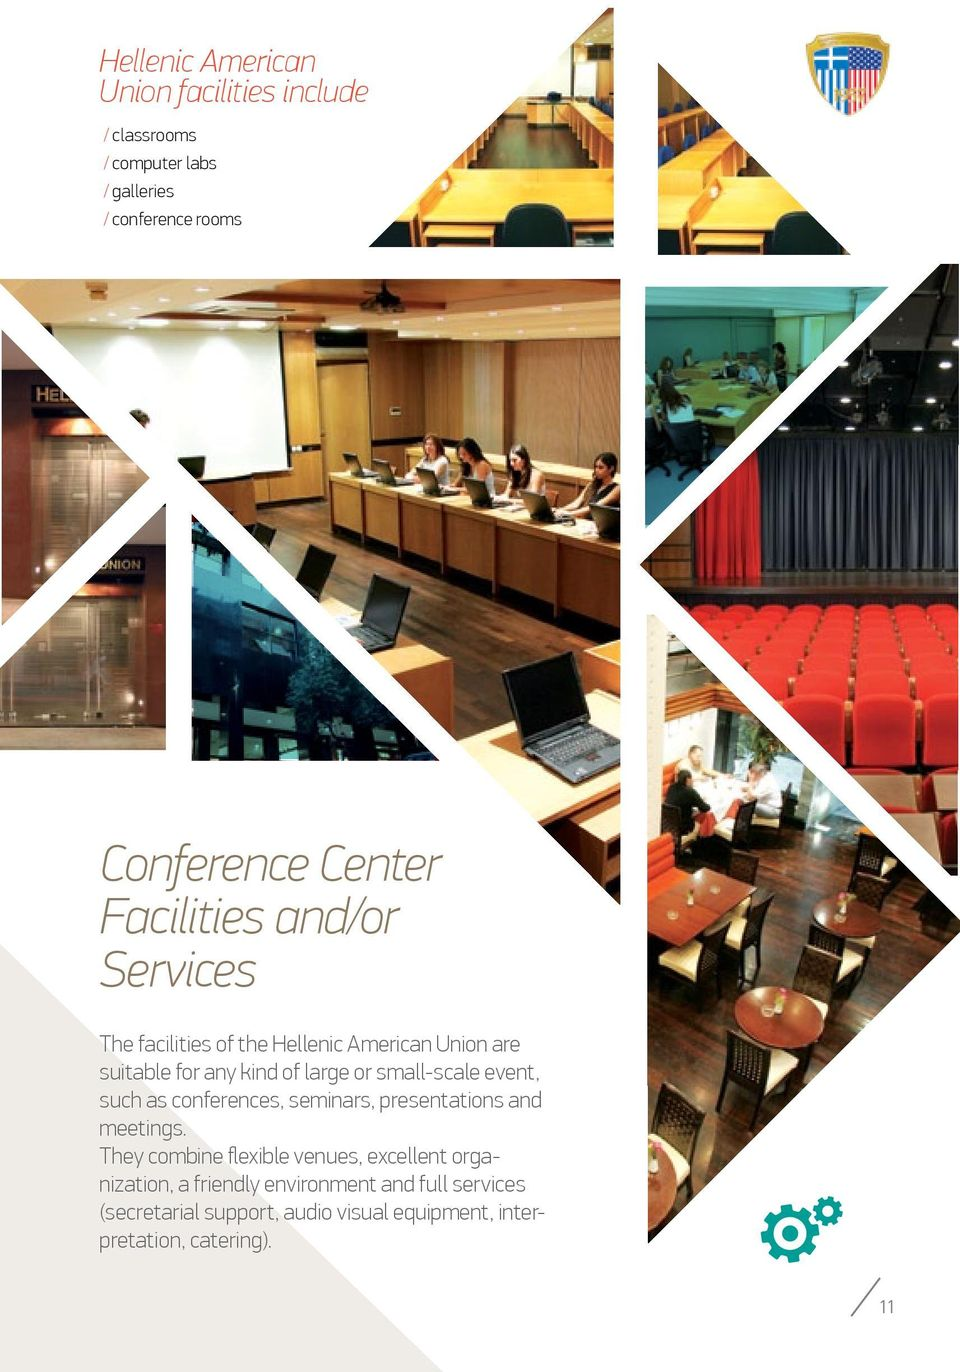 small-scale event, such as conferences, seminars, presentations and meetings.